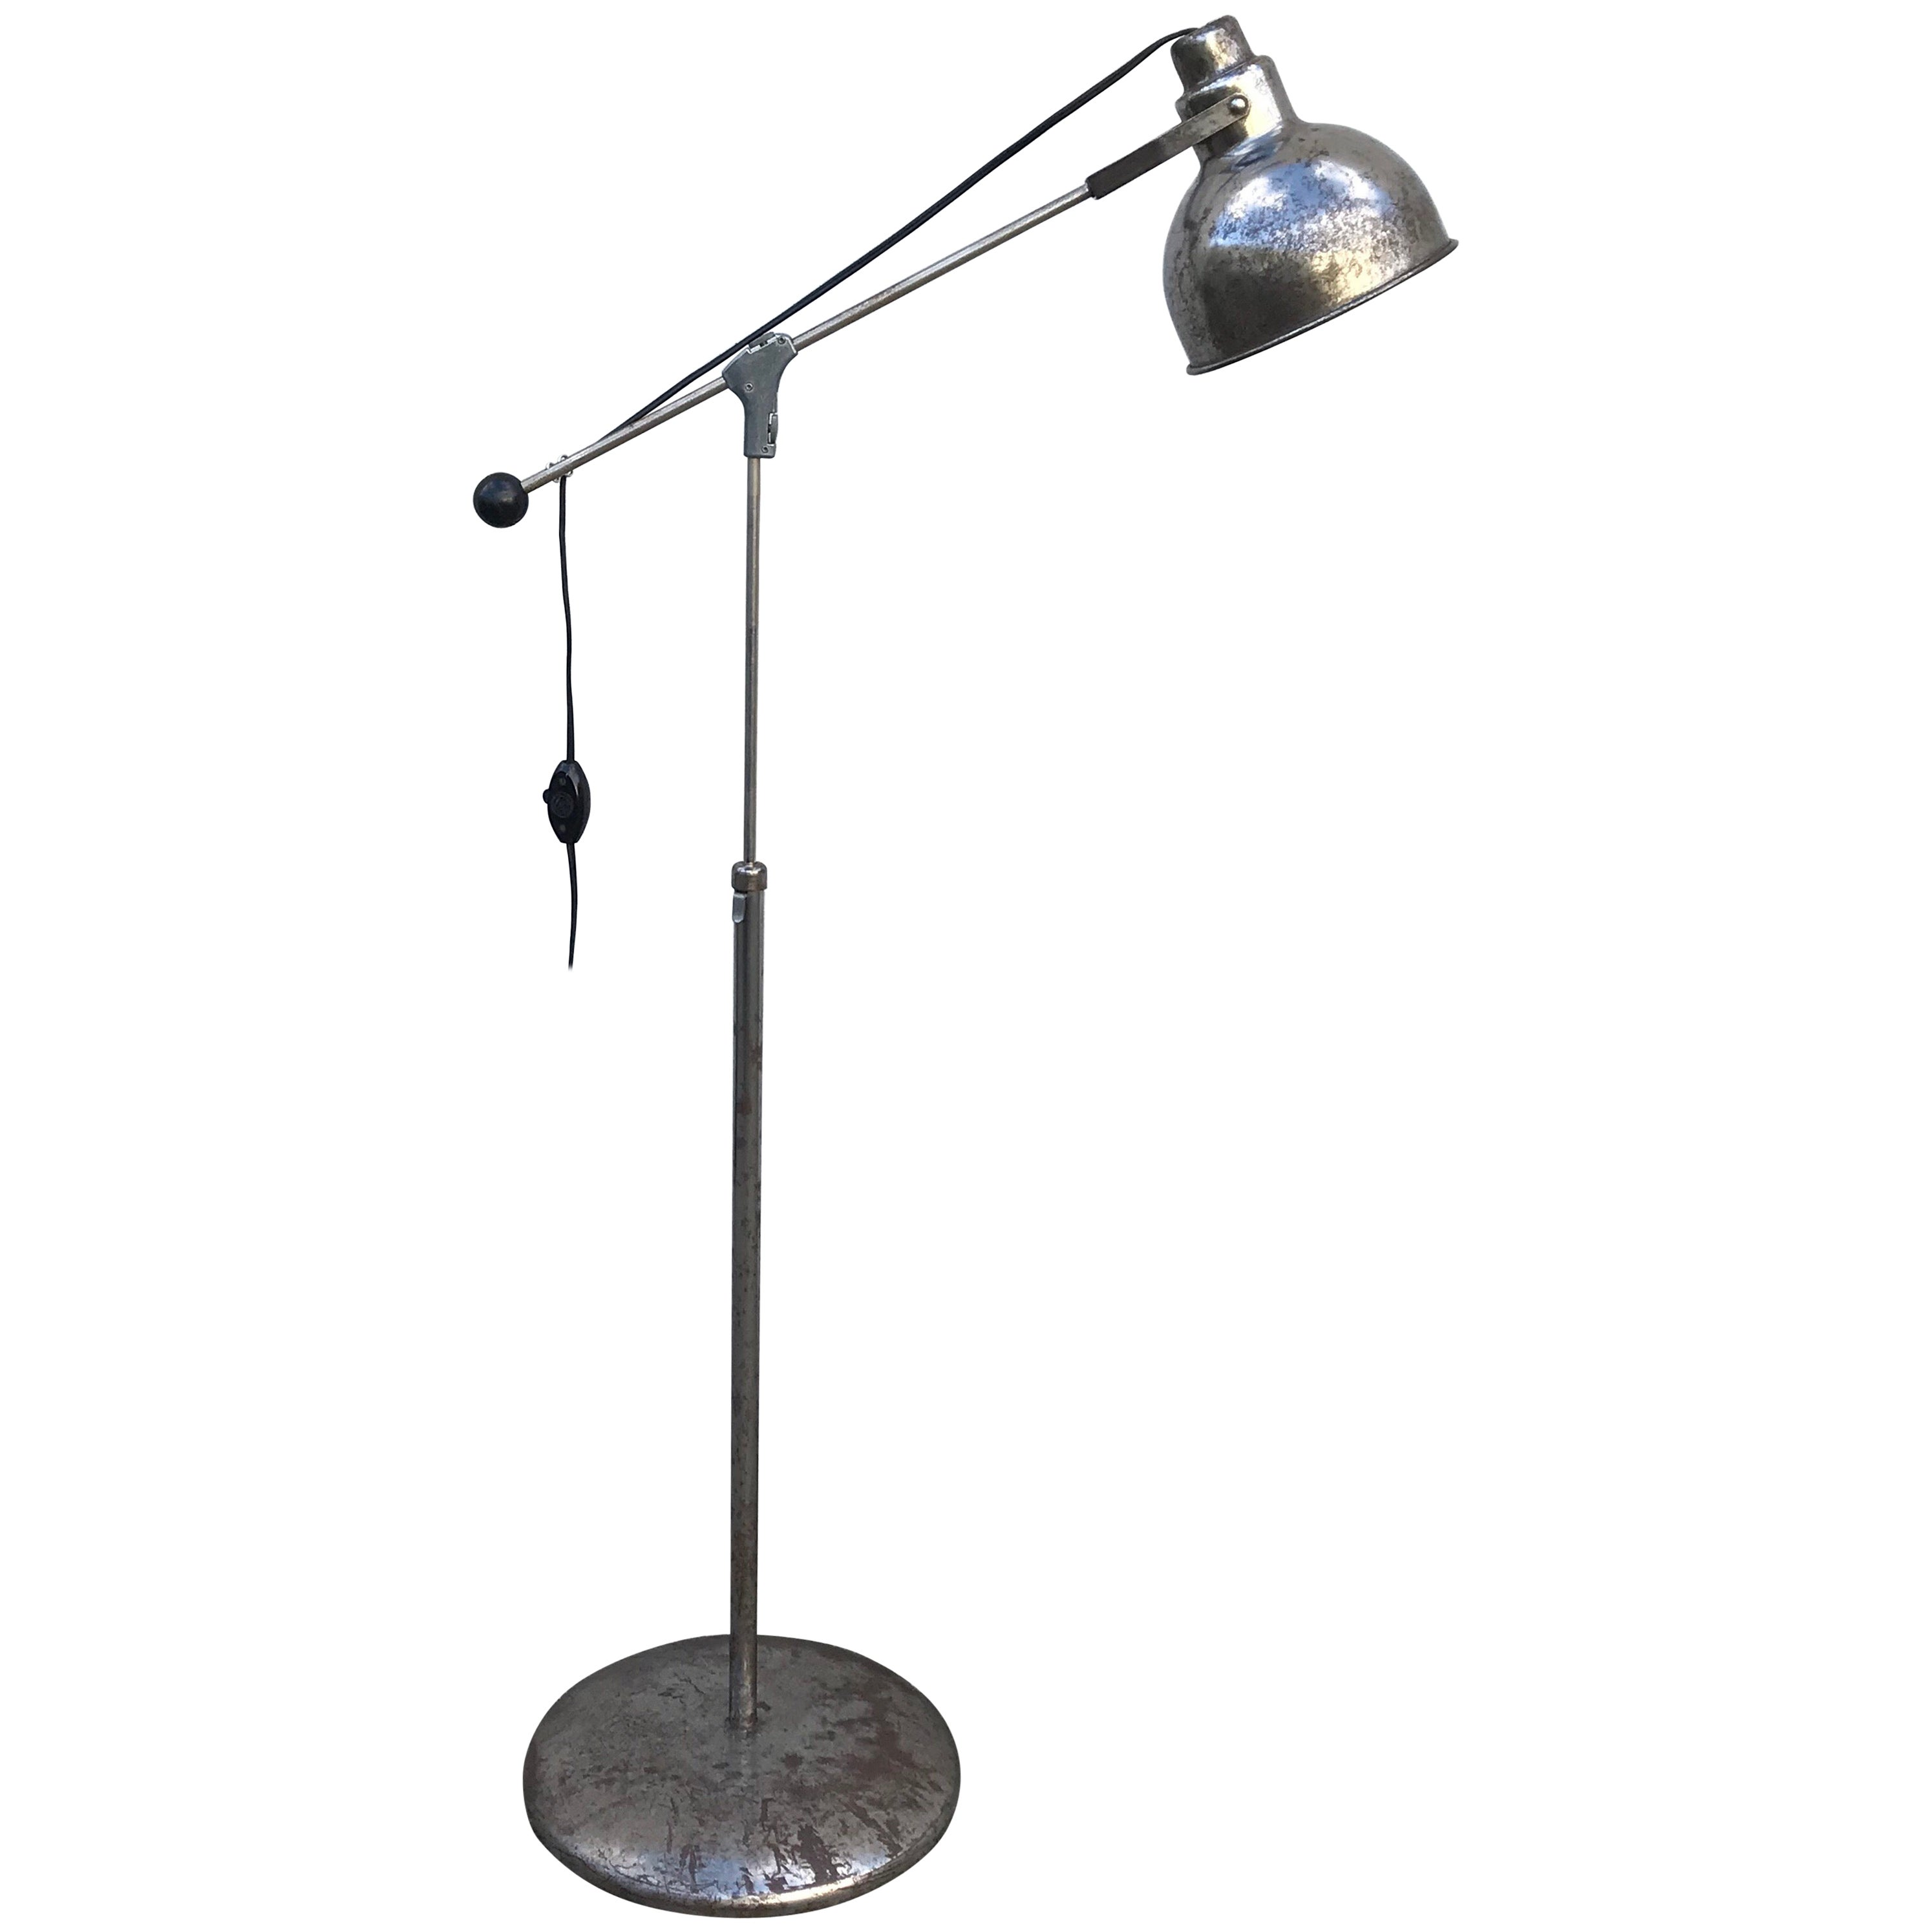 Machine Age Modern Industrial Steel Floor Lamp, Adjustable Height, 1930's